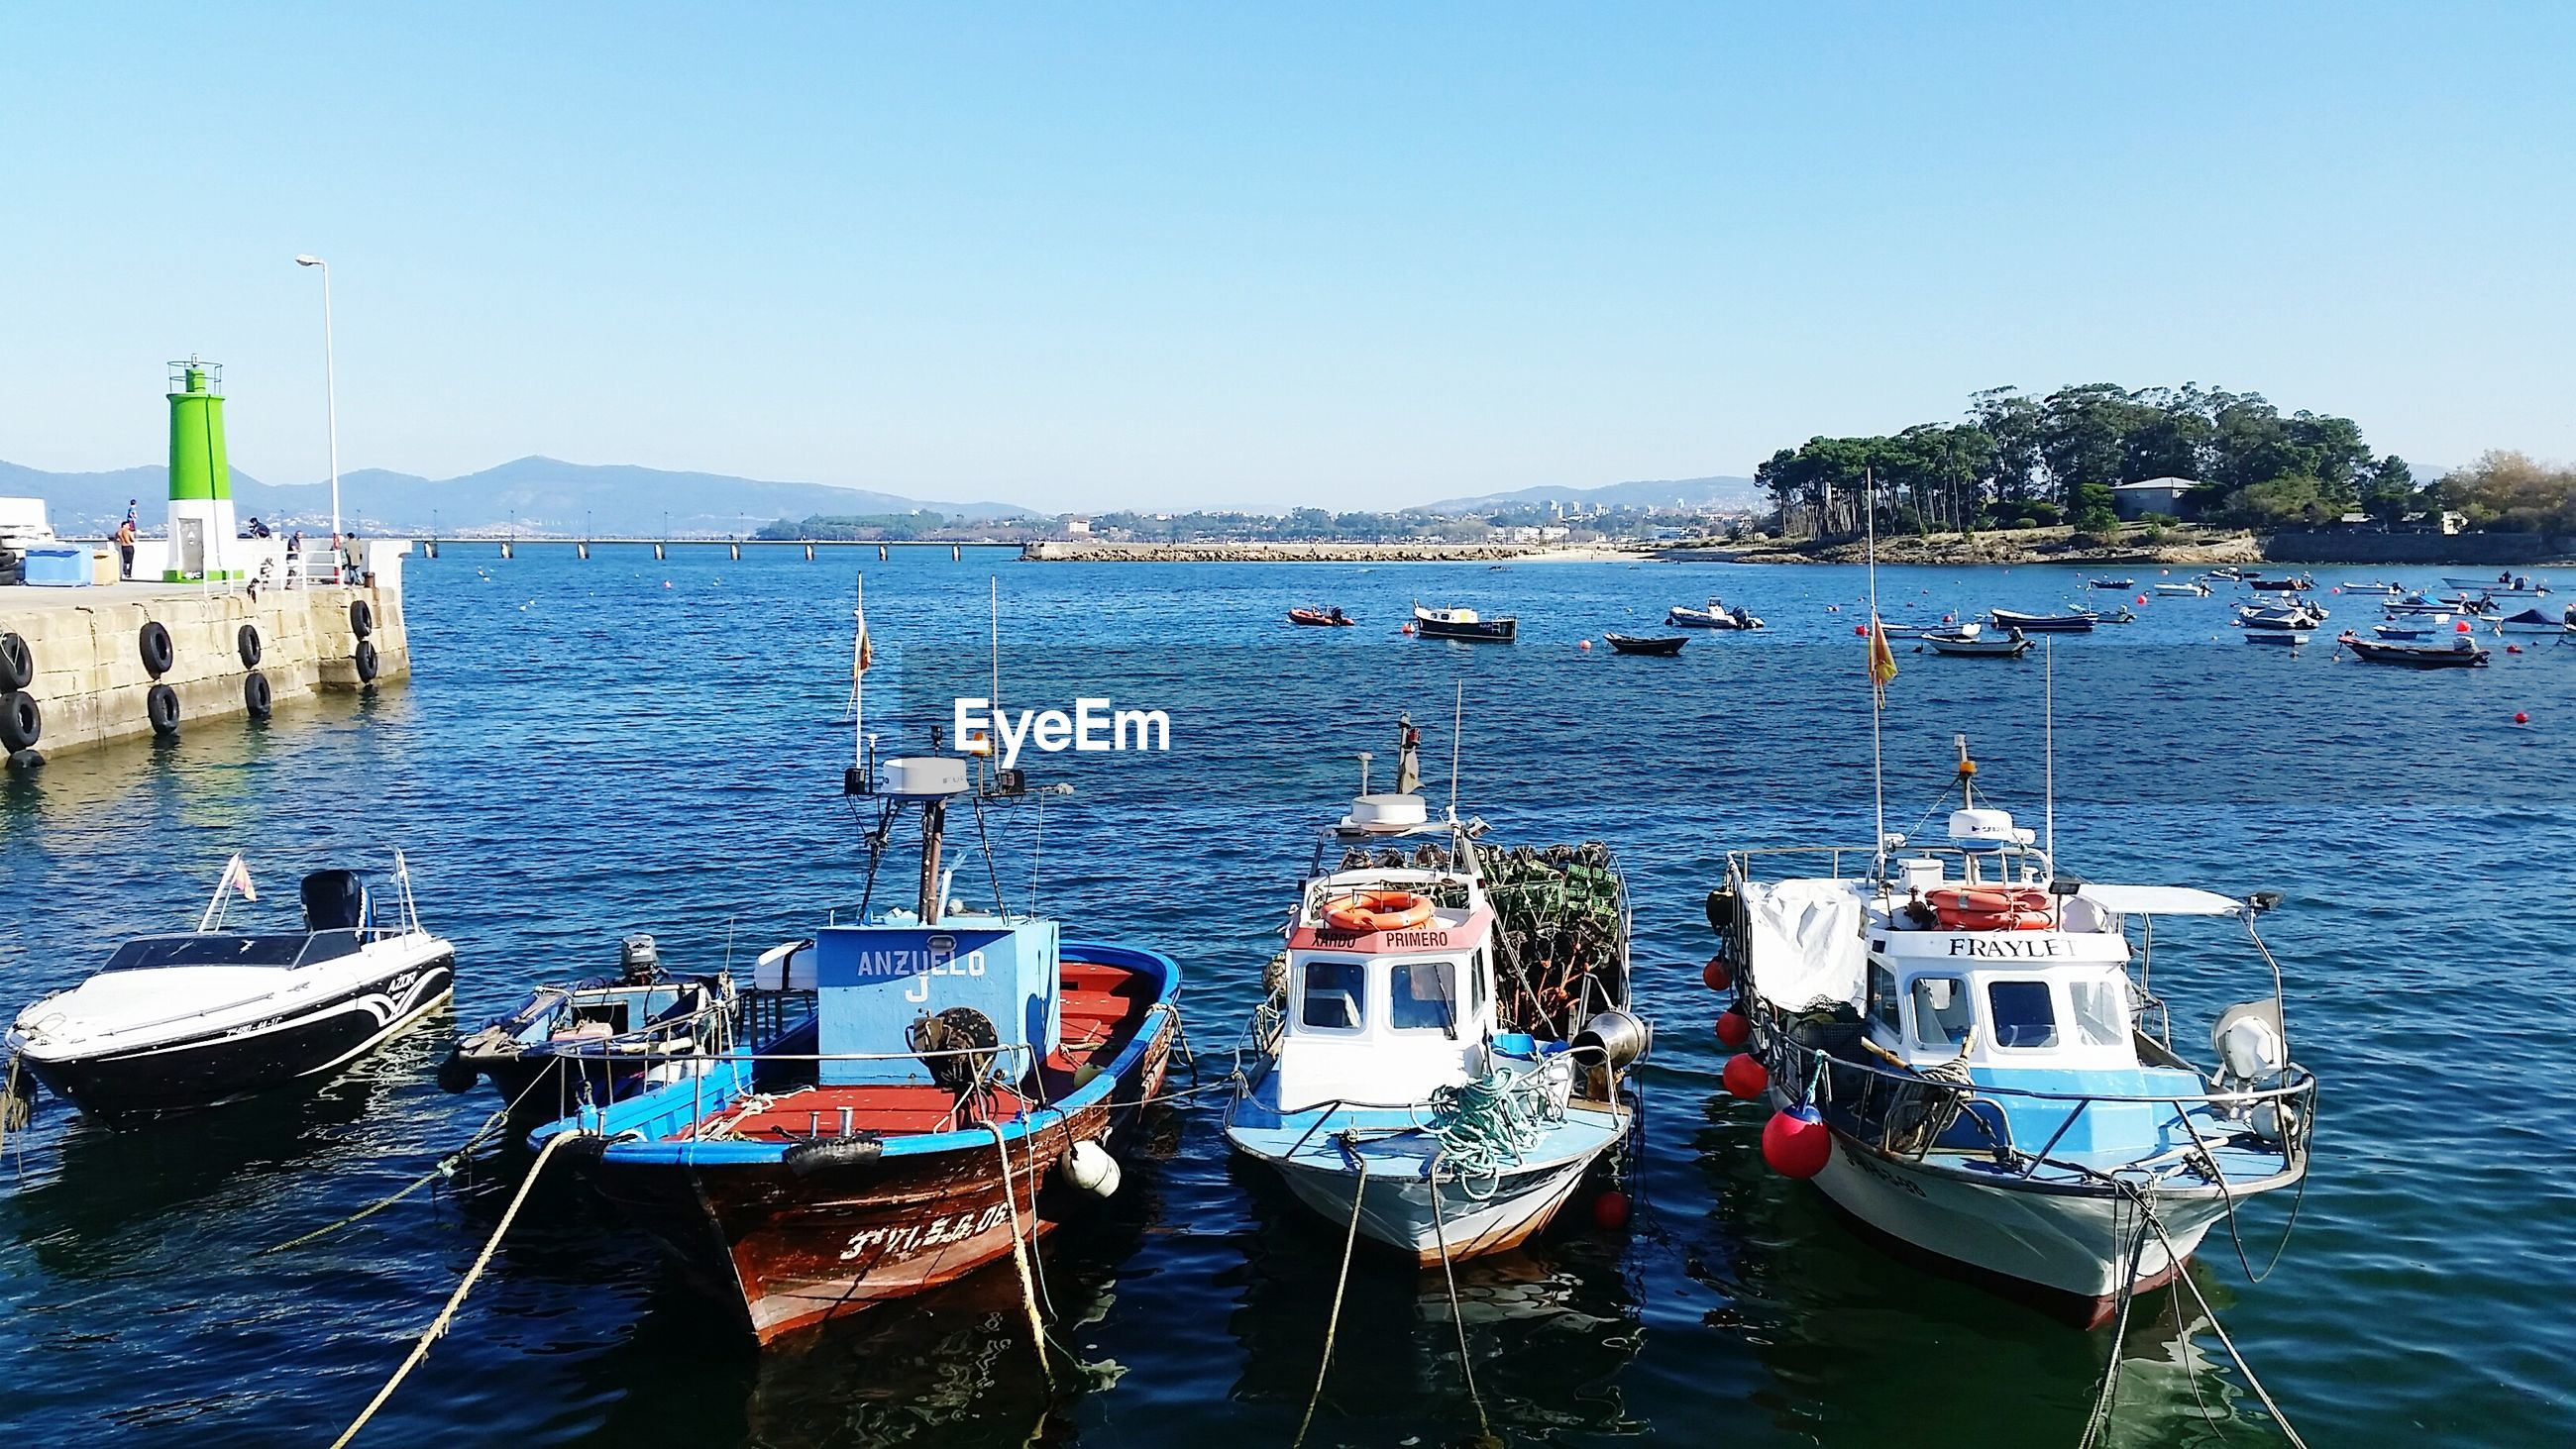 BOATS MOORED ON SEA AGAINST CLEAR BLUE SKY